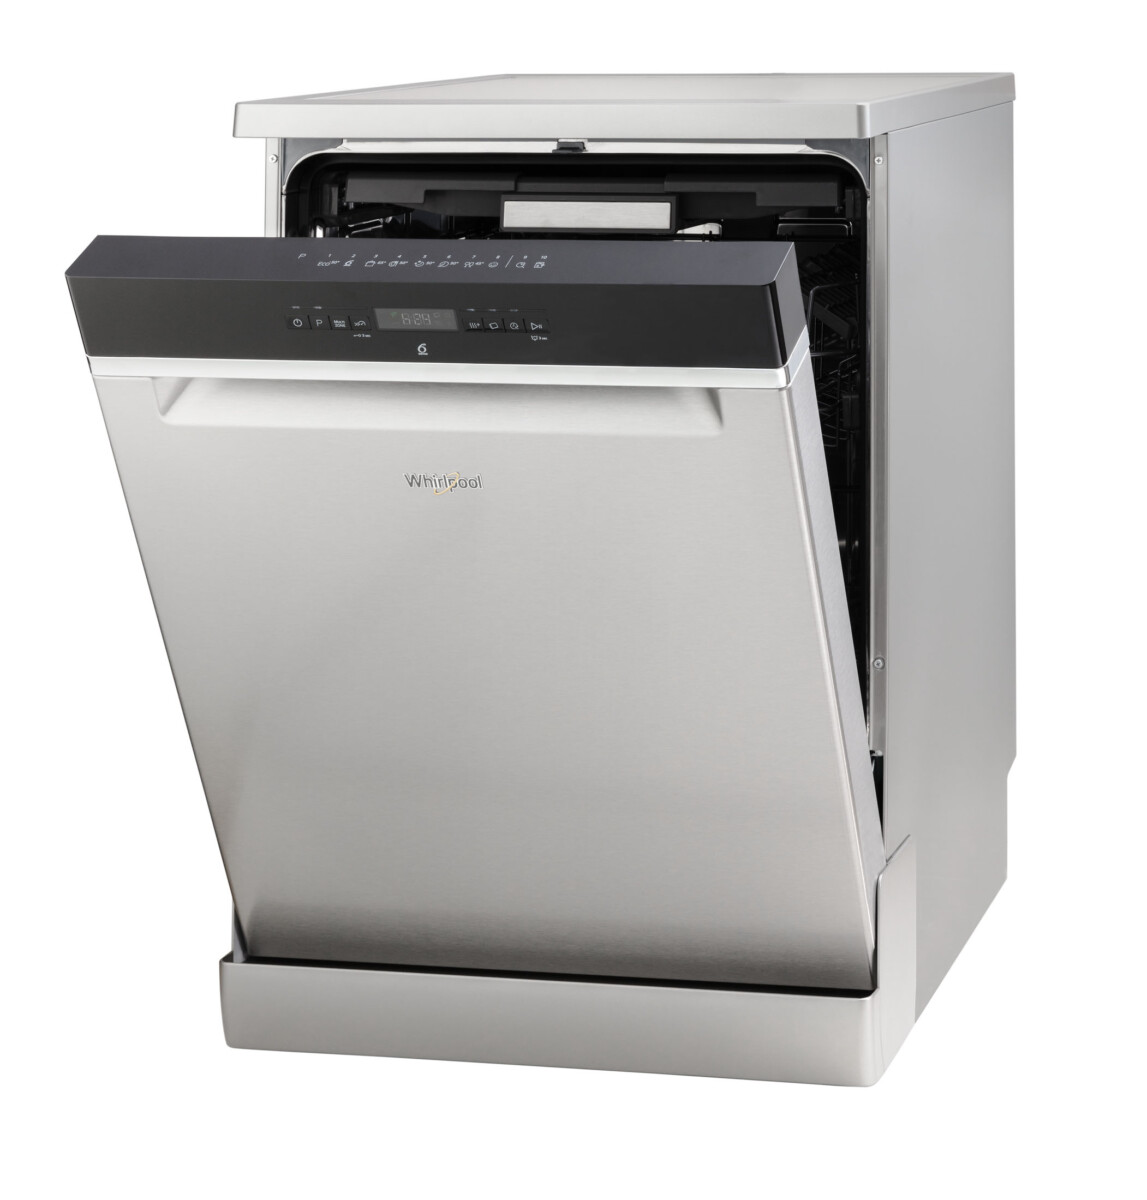 Advertising Product photography of whirlpool dishwasher front side view door slightly open